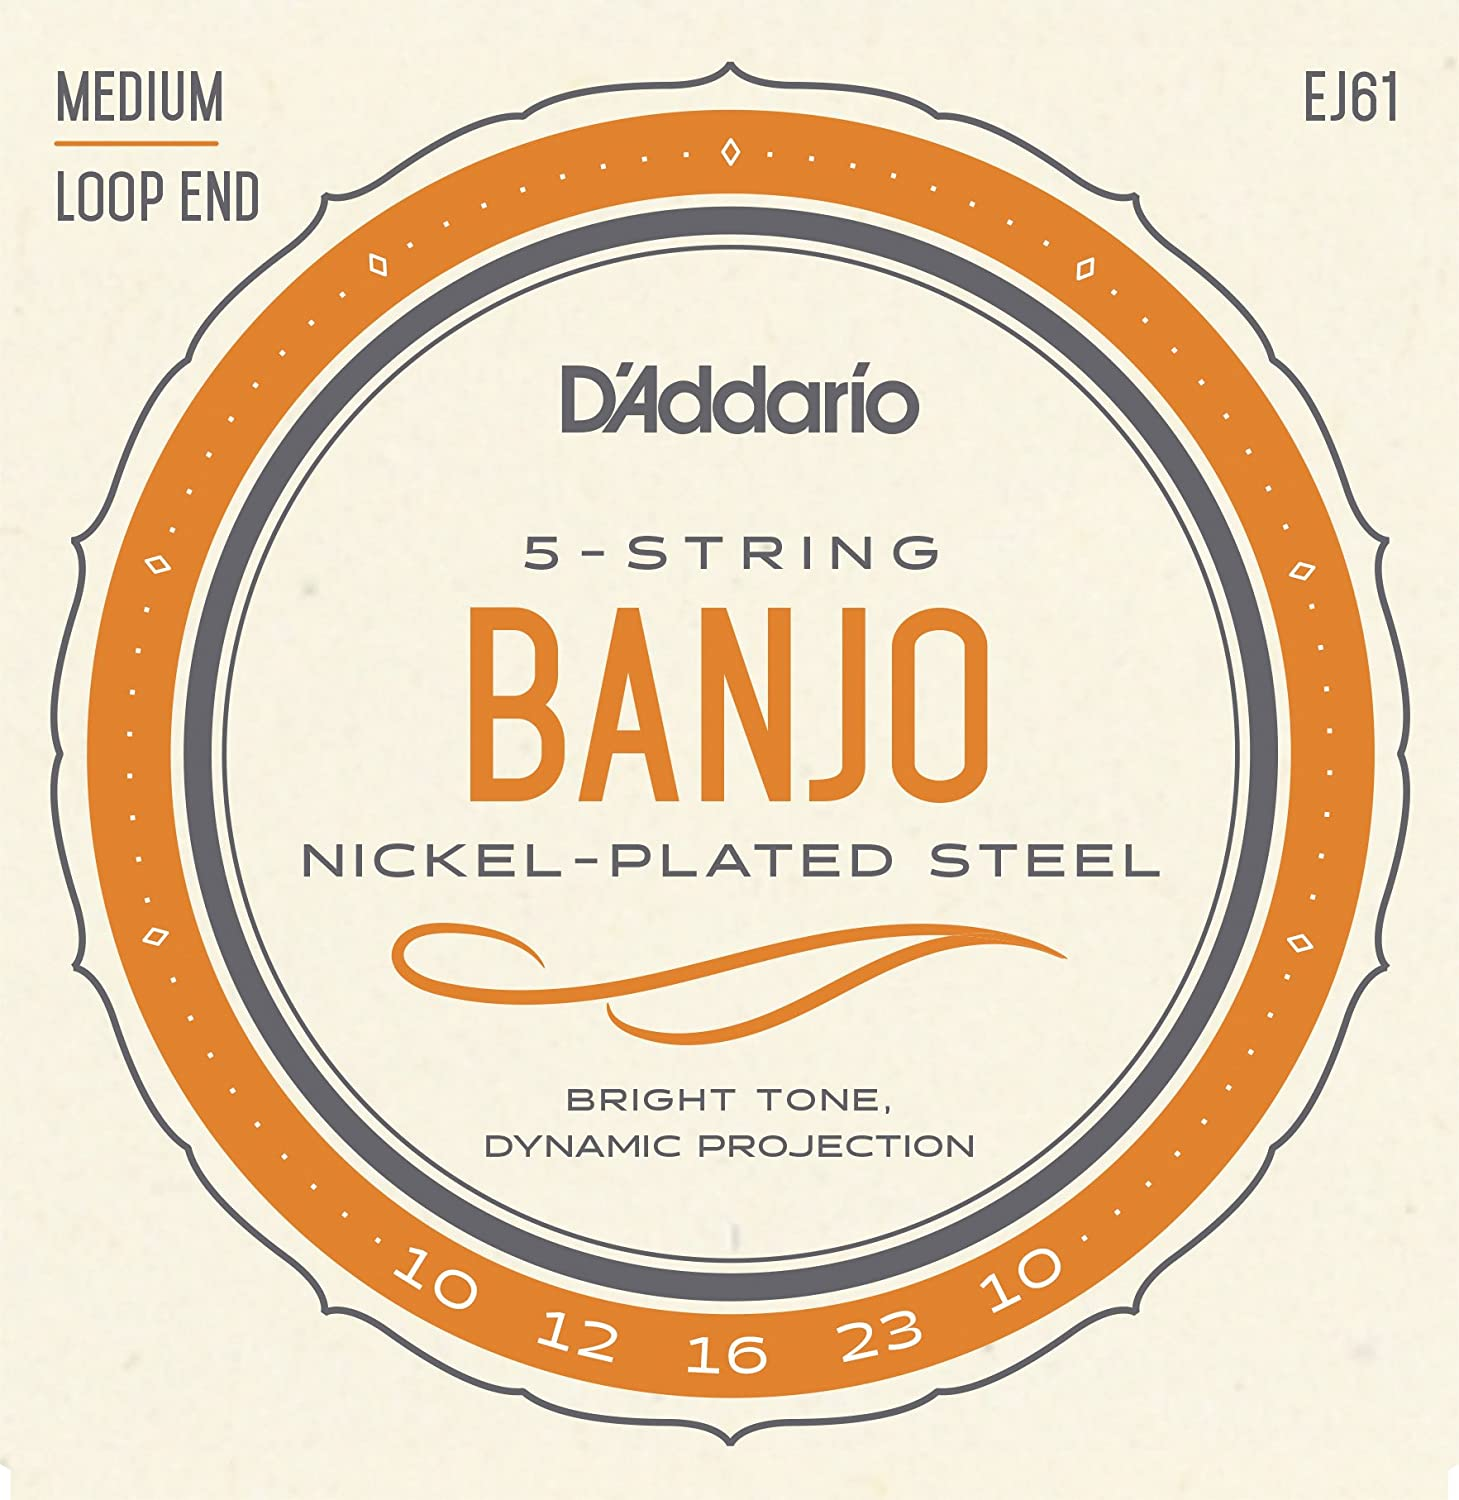 D'Addario EJ61 Nickel 5-String Banjo Strings, Medium, 10-23 D' Addario